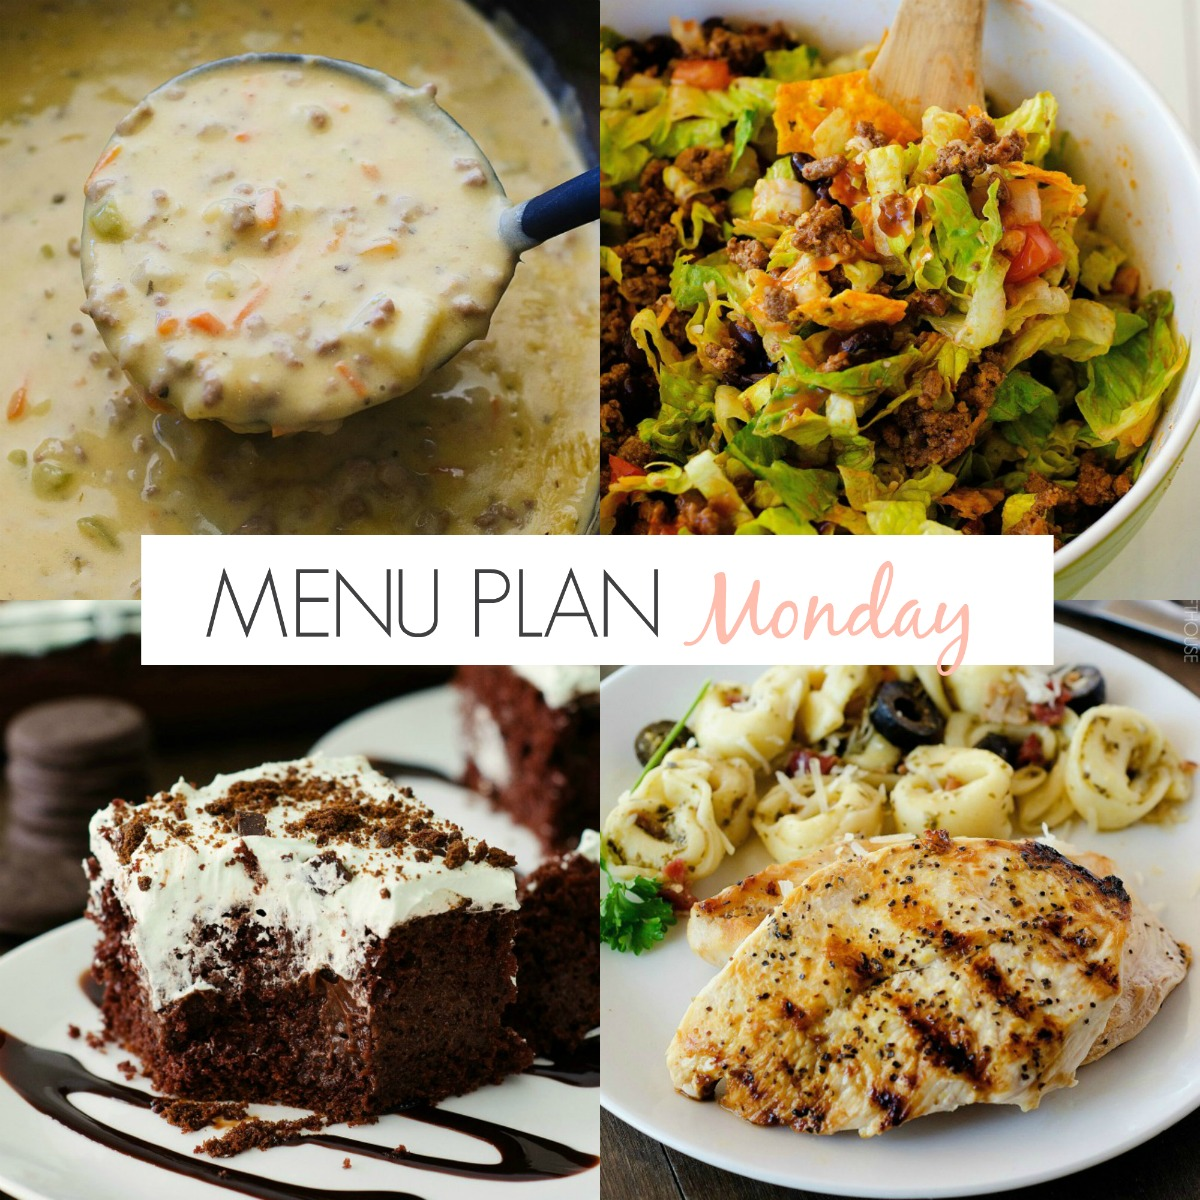 Menu Plan Monday #167